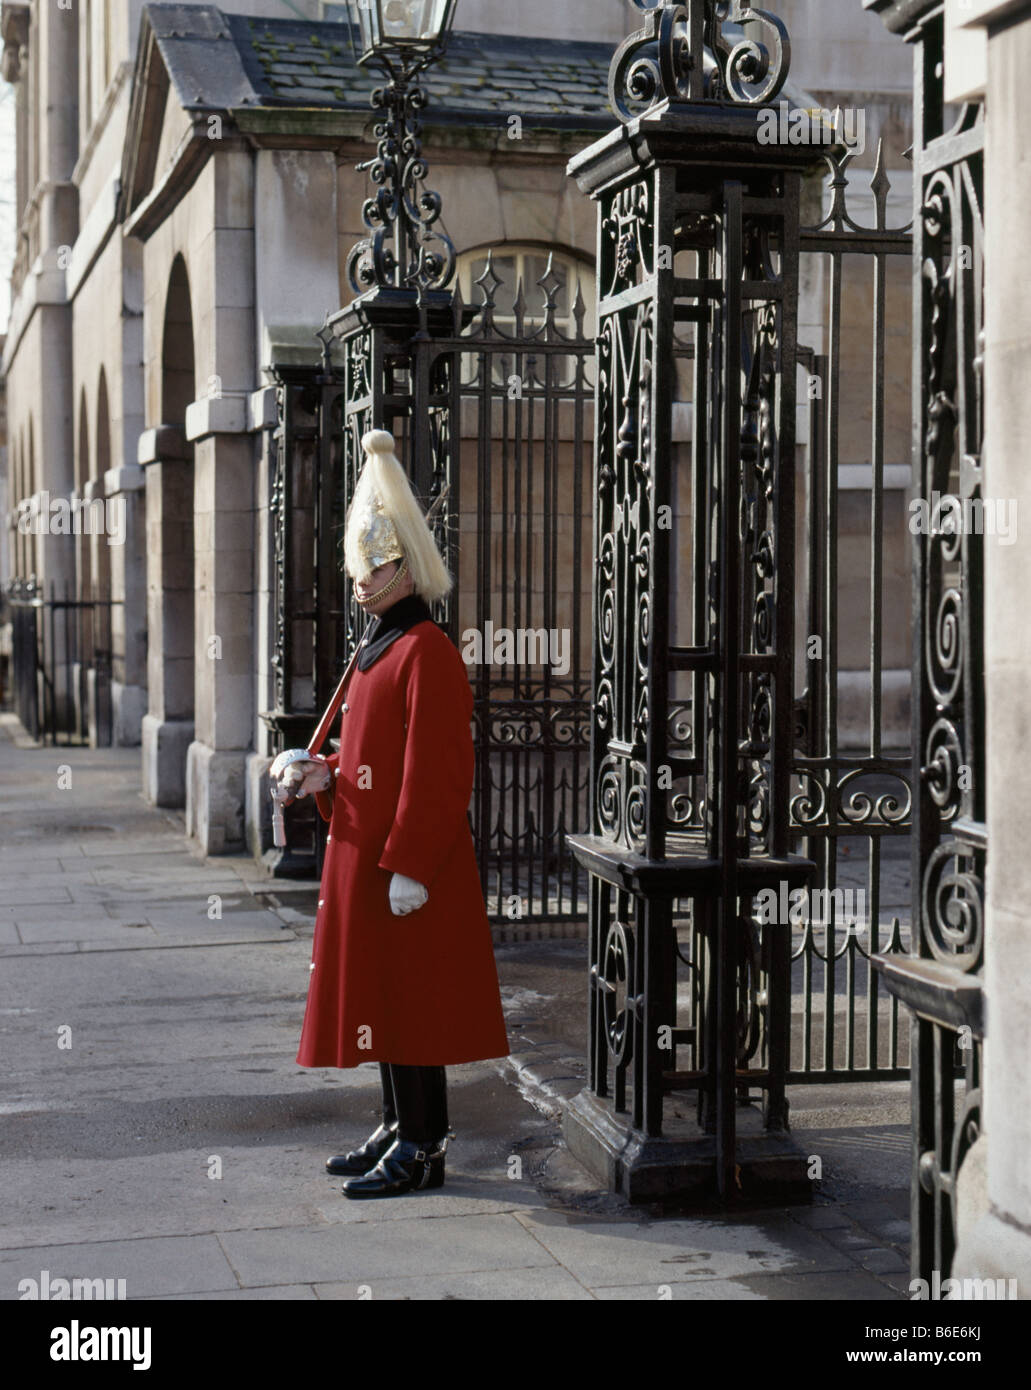 Life Guard of the Household Cavalry standing guard at  Horse Guards, Whitehall, London England. - Stock Image